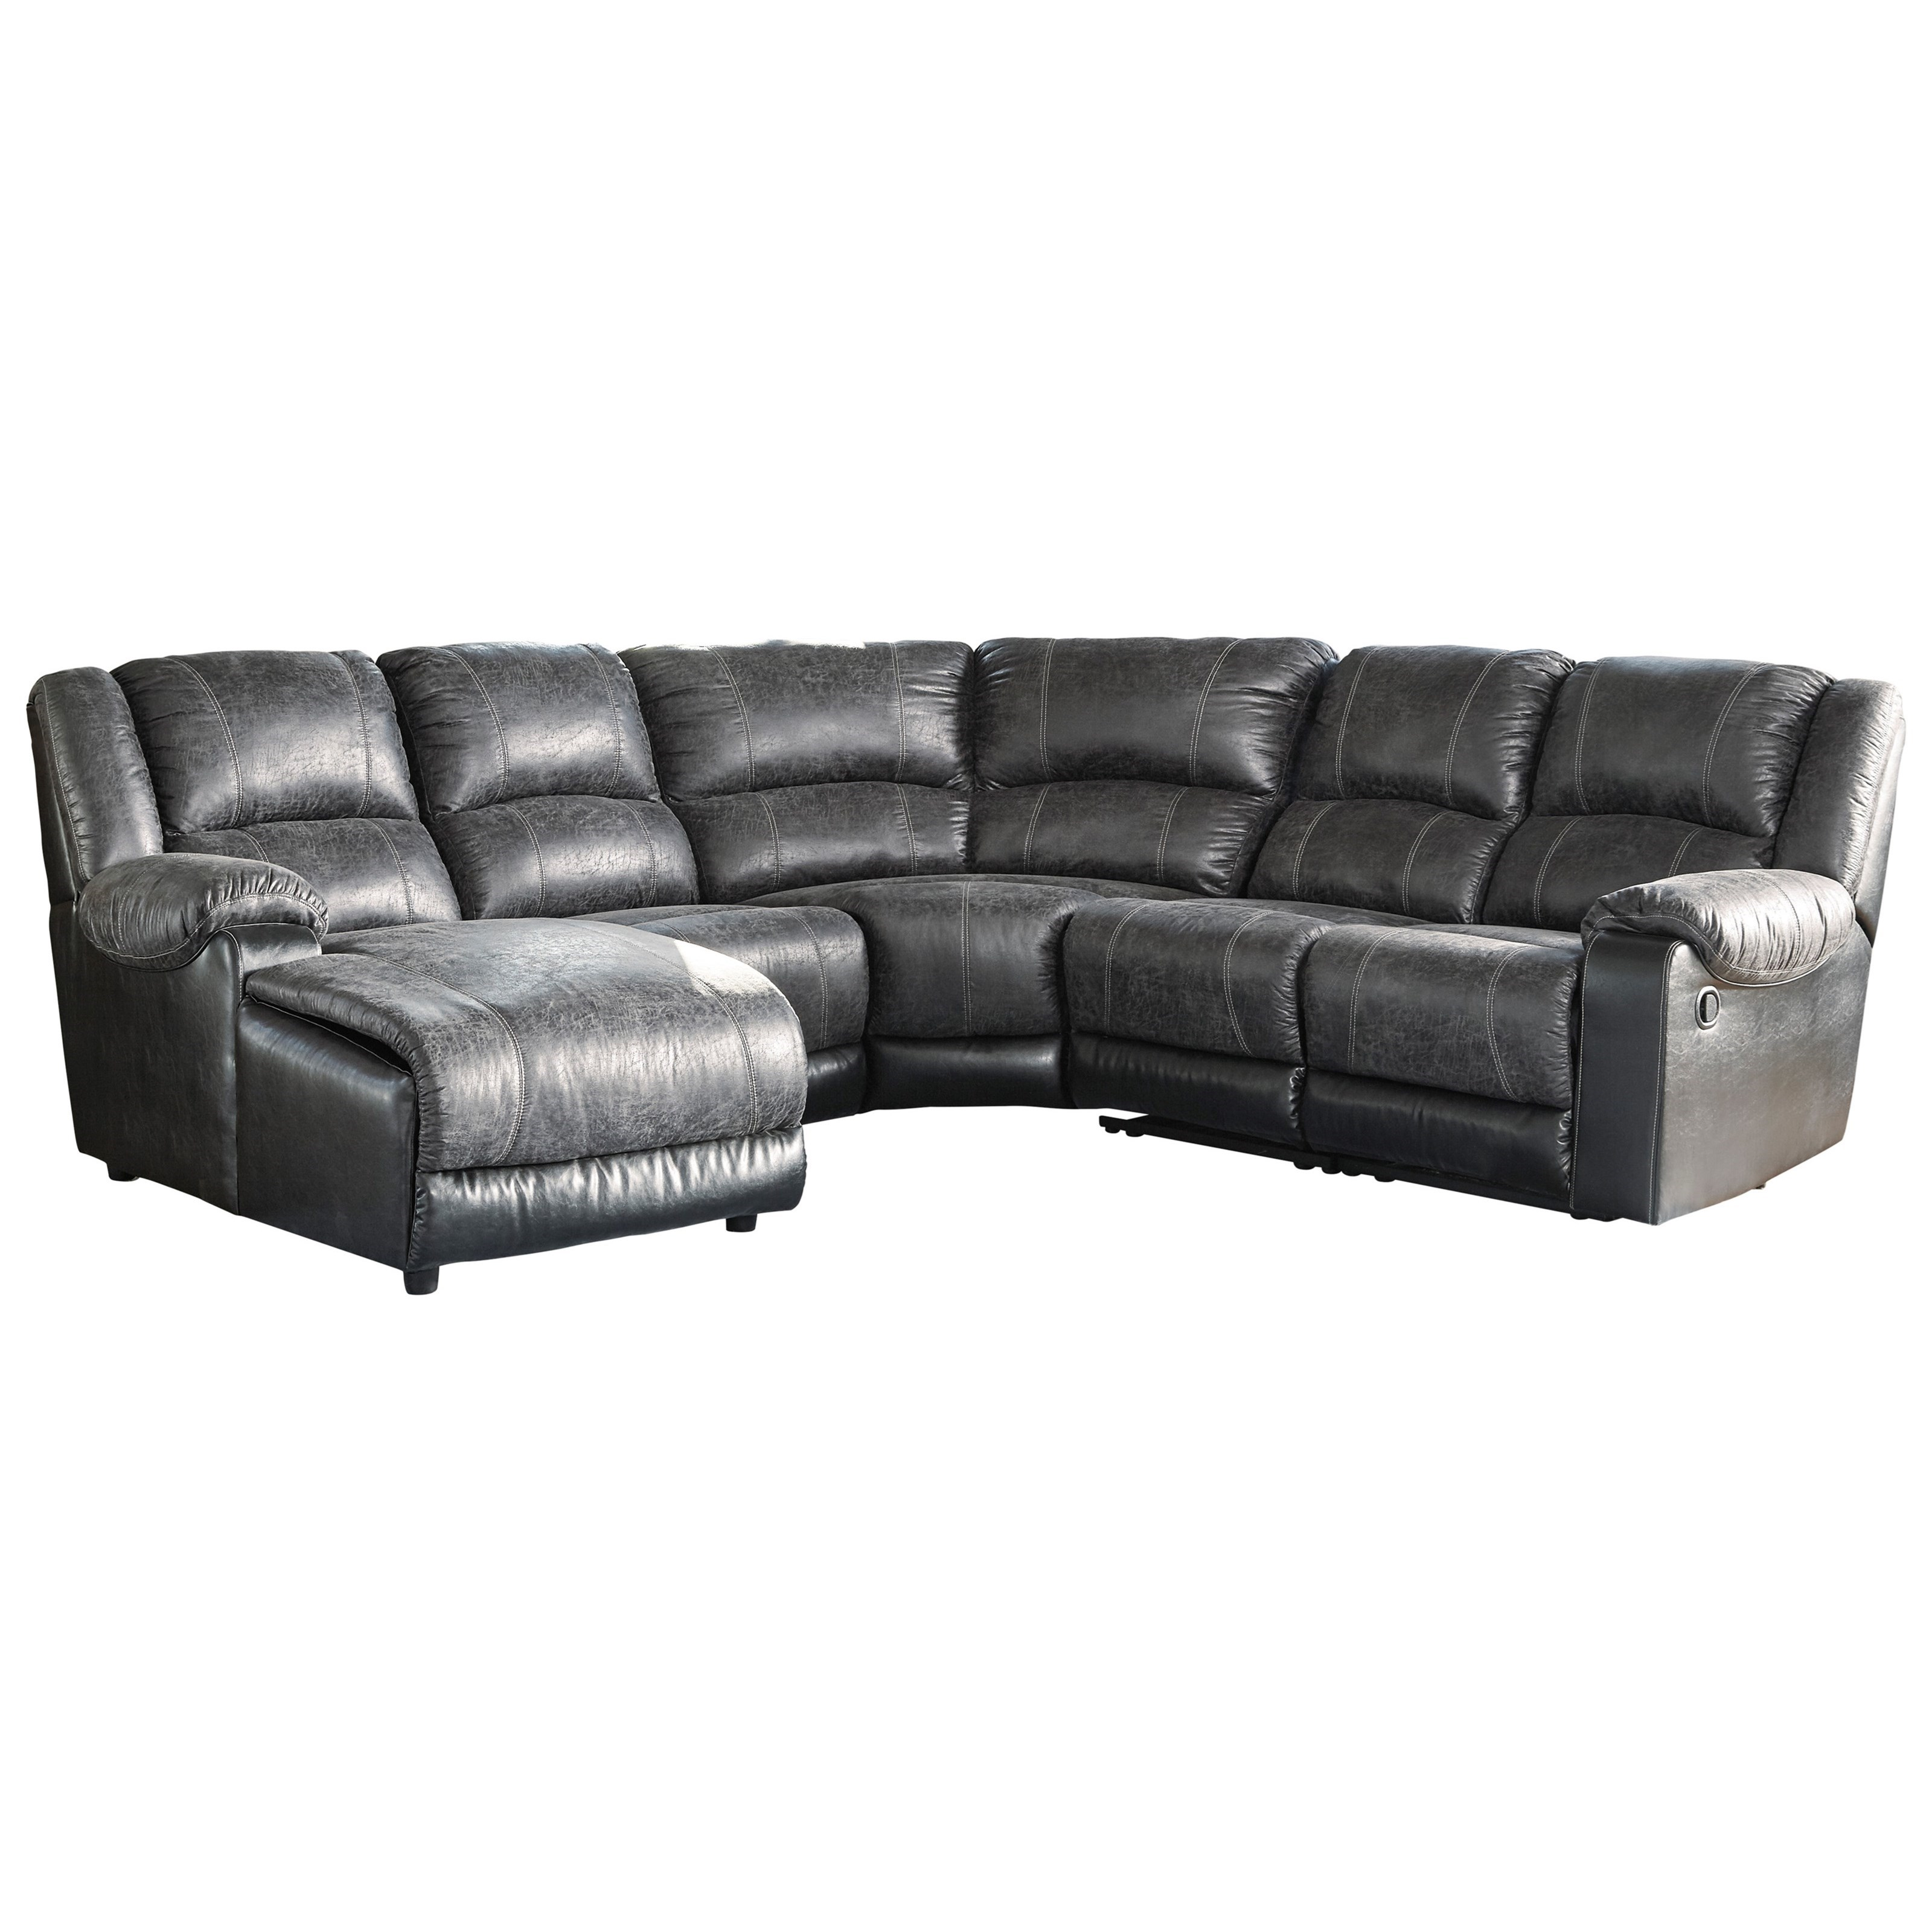 lounge lounges chairs regard with longue interior furniture reclining best the to indoor recliner chaise current accent